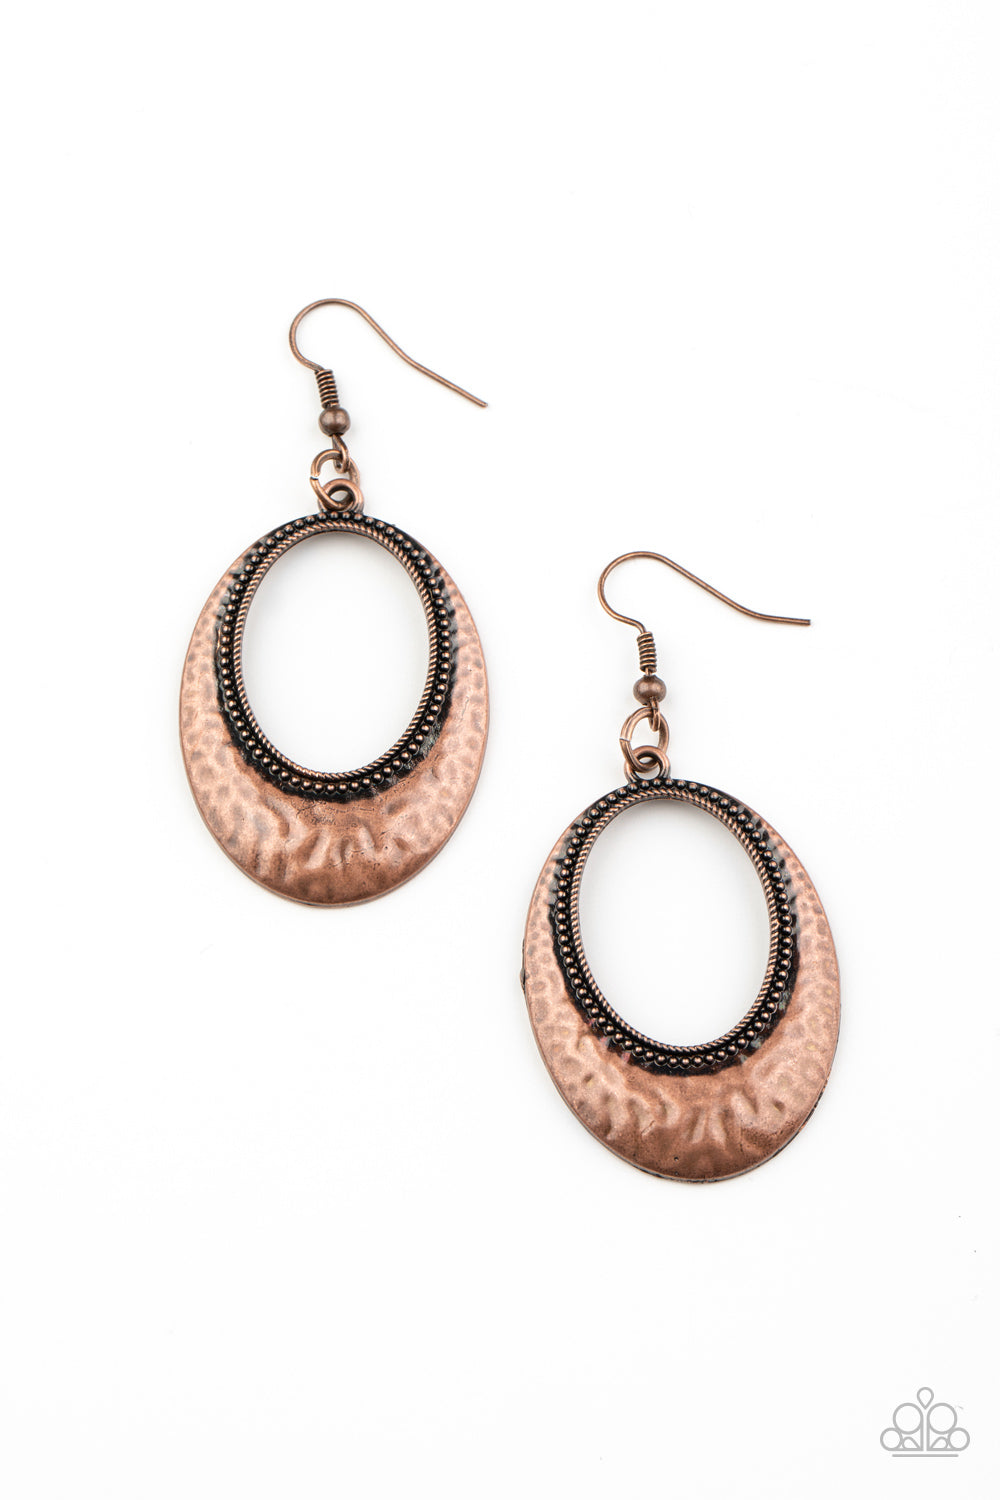 five-dollar-jewelry-tempest-texture-copper-earrings-paparazzi-accessories